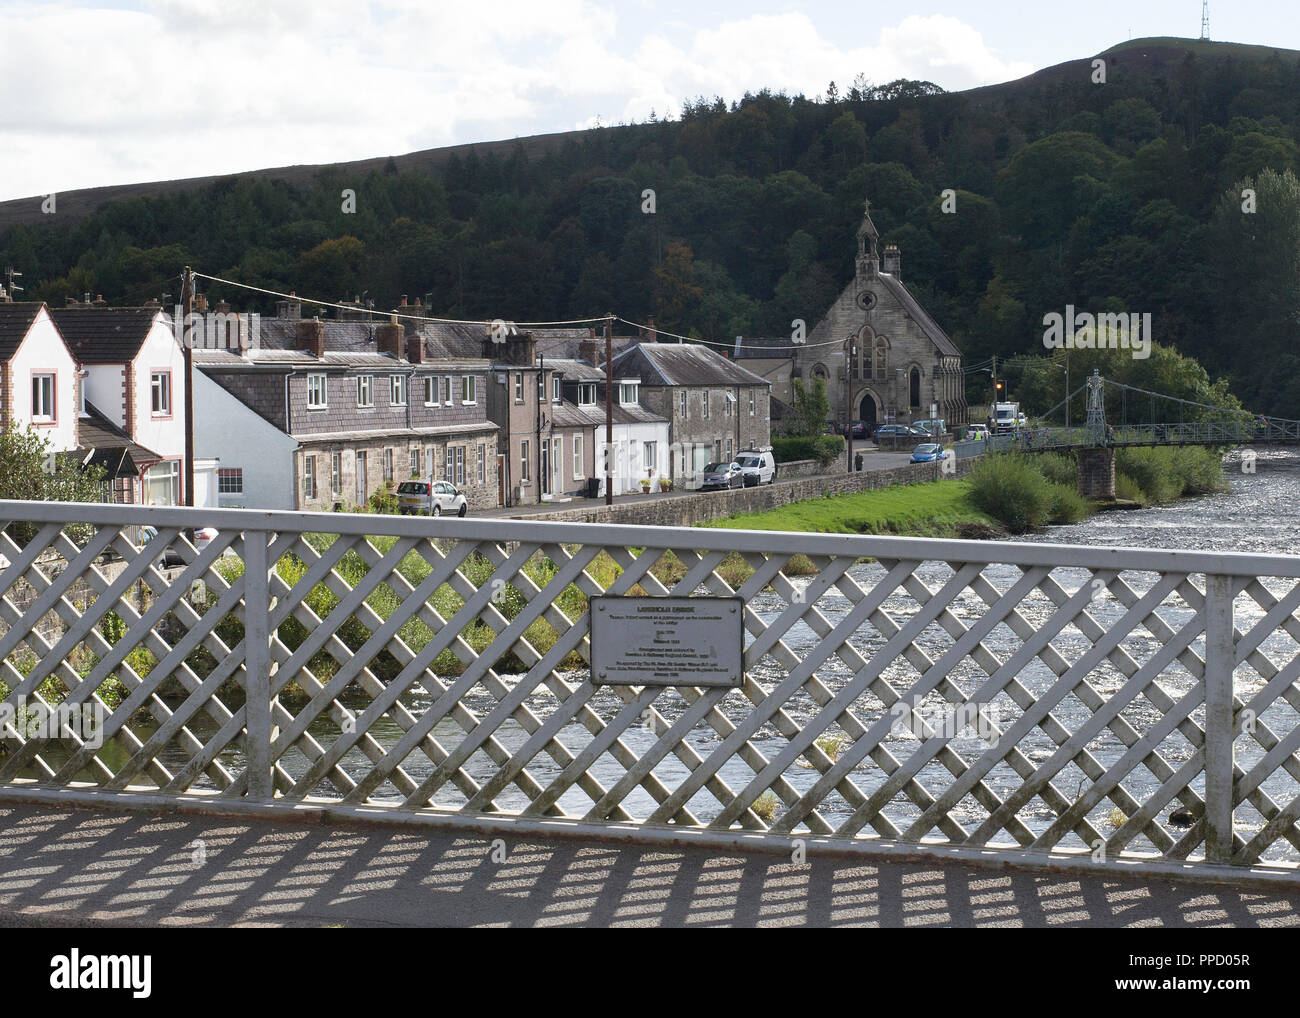 The town of Langholm where the local community are growing chillis as a community. - Stock Image